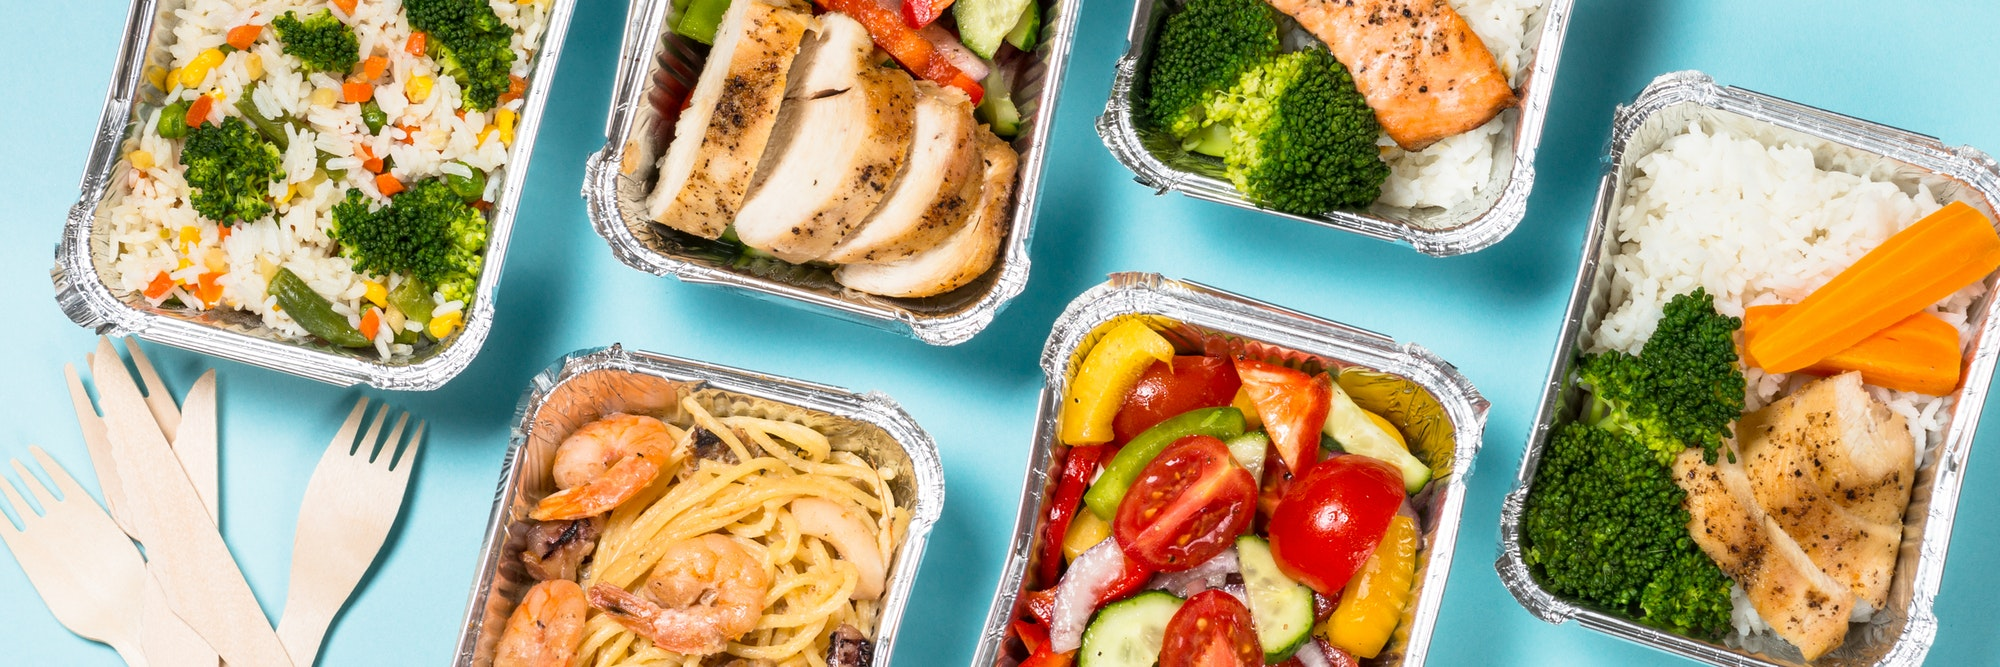 Food delivery concept - healthy lunch in boxes